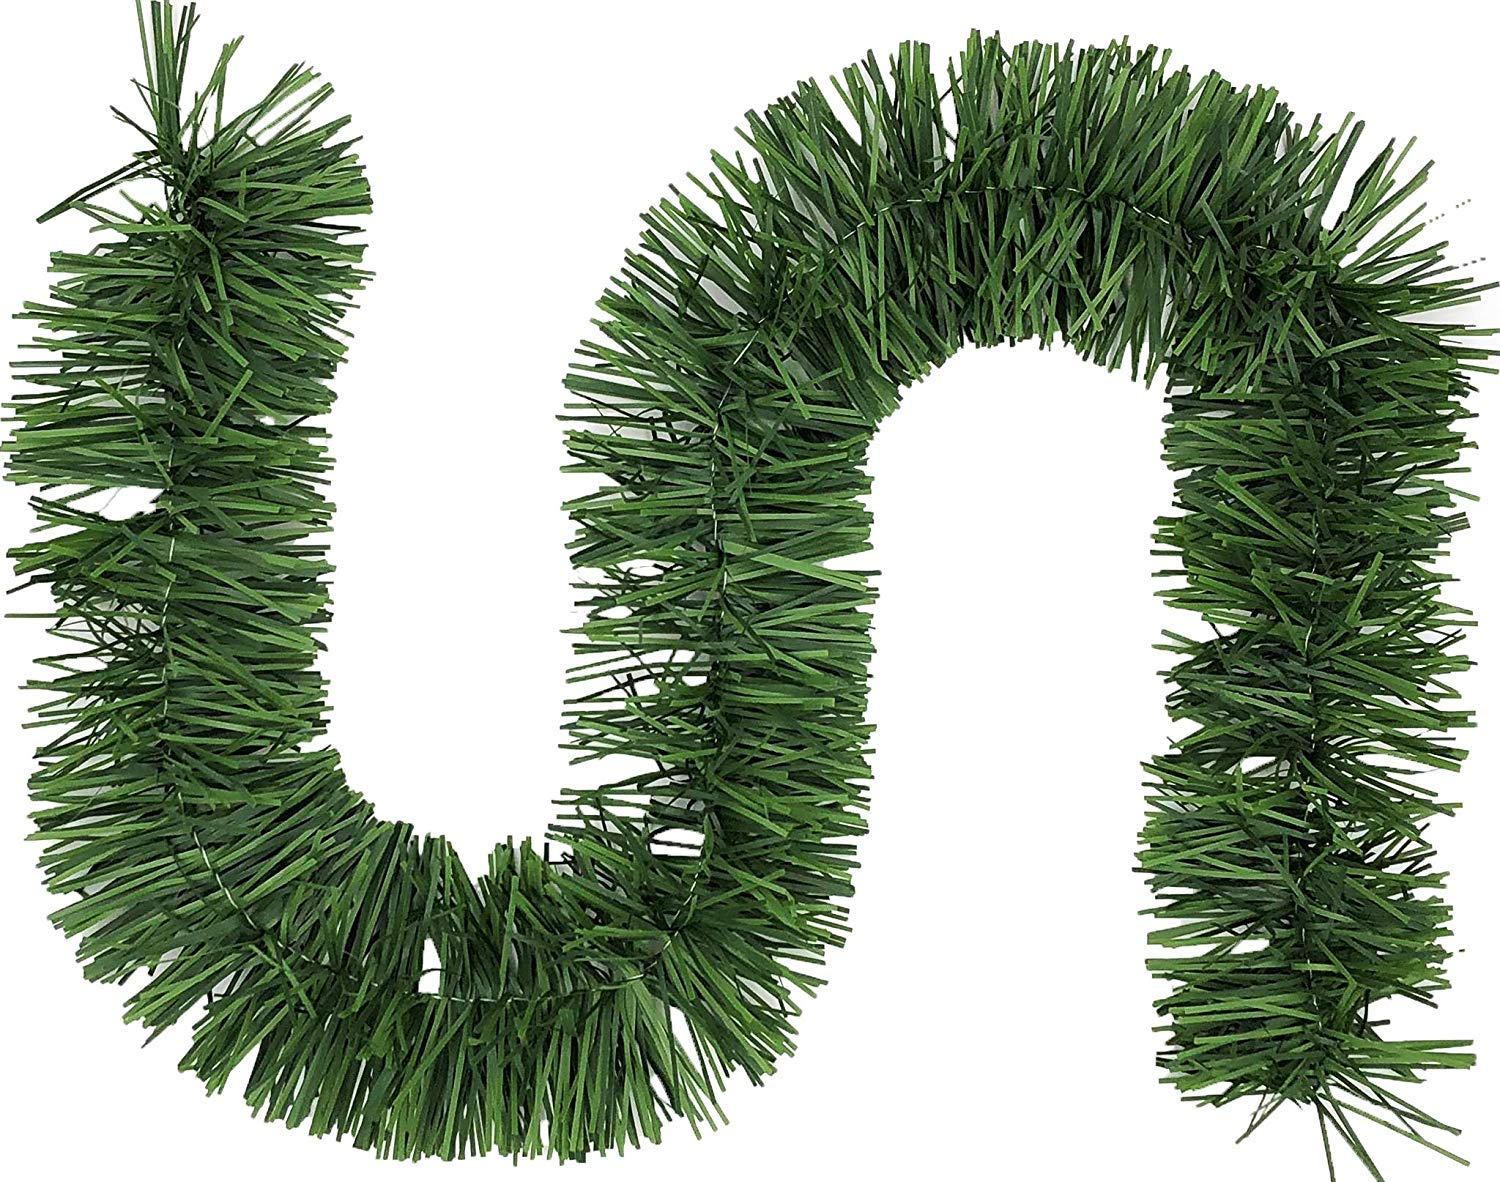 Non-Lit Soft Green Holiday Decor for Outdoor or Indoor Use iTrustech 18ft Christmas Green Garland for Christmas Decorations or Wedding Part Premium Quality Home Garden Artificial Greenery